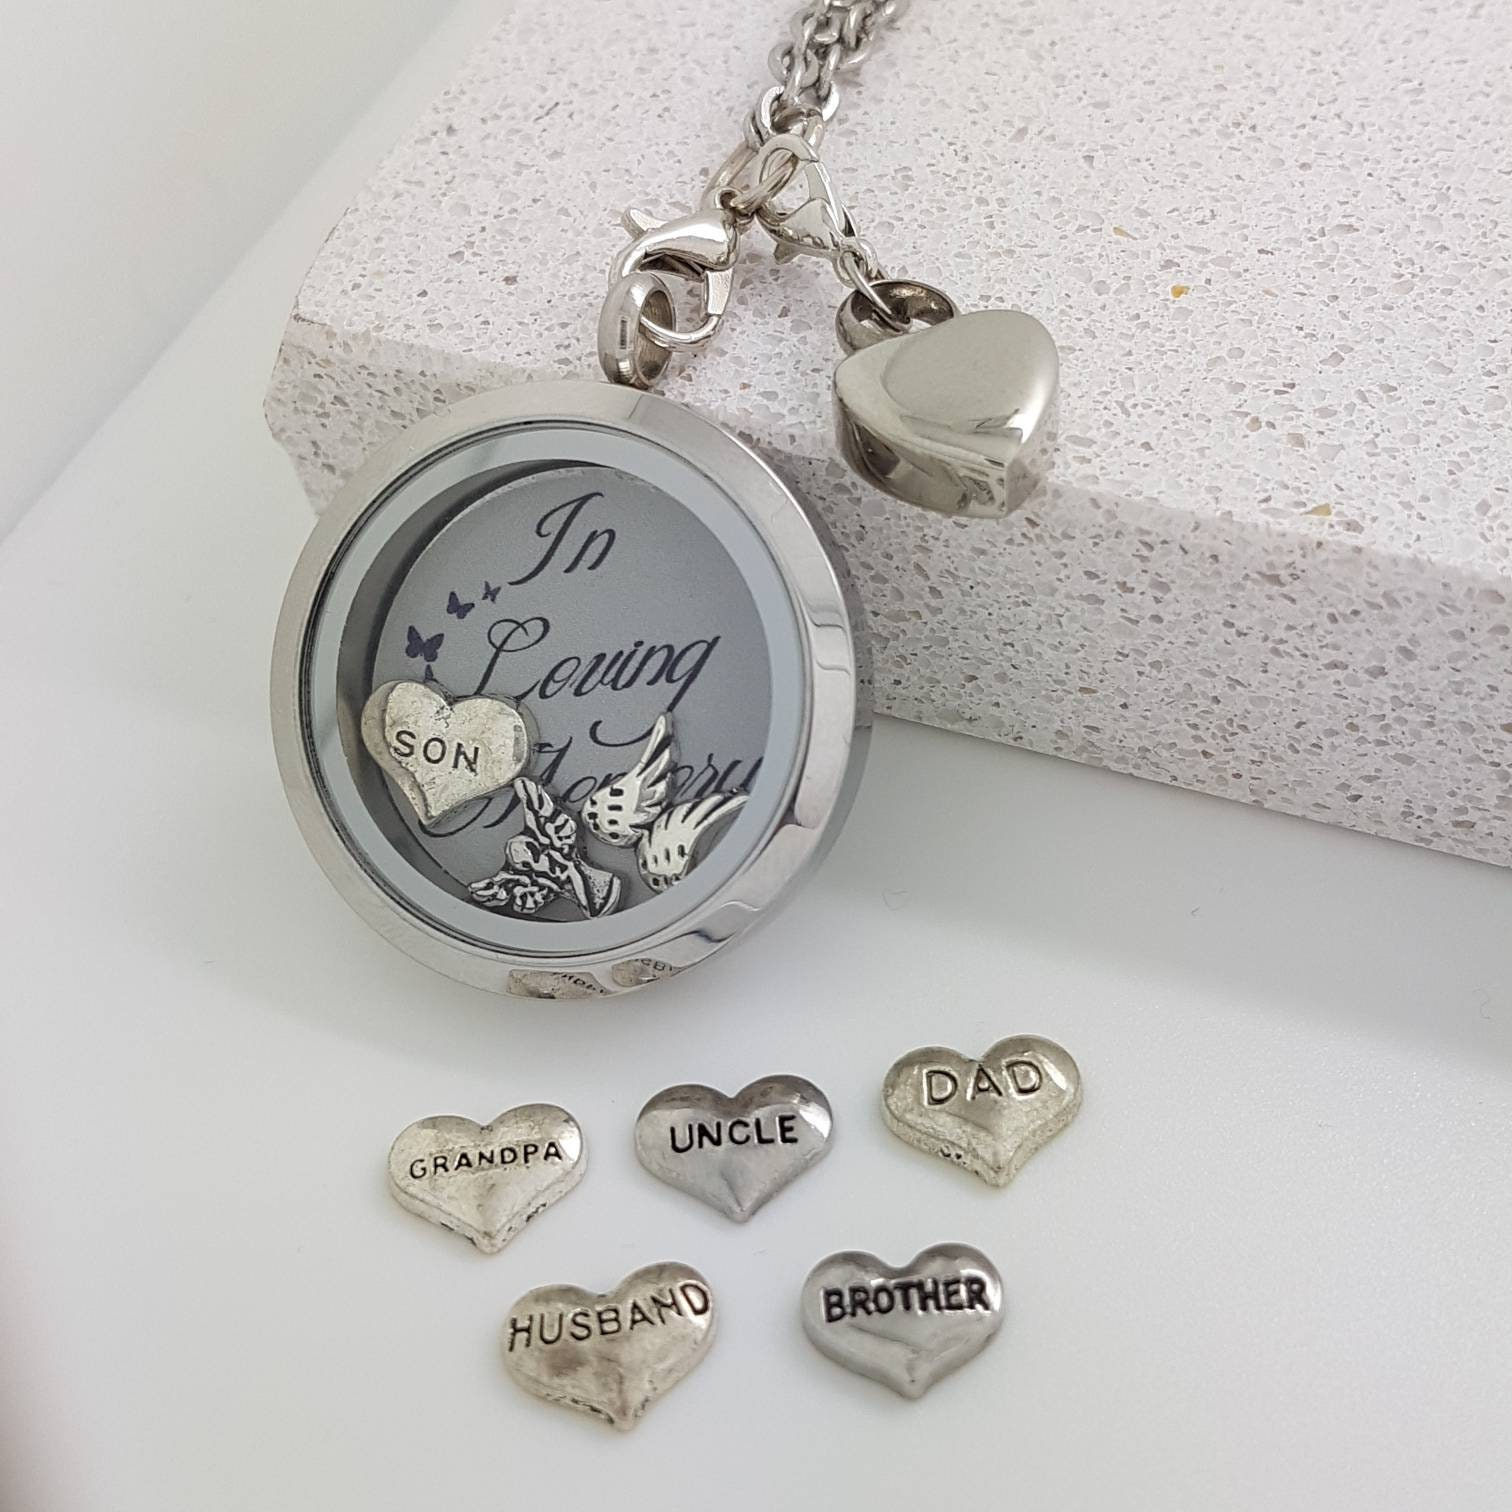 Cremation Jewellery Ashes Keepsake Urn Necklace Dad Ashes Locket Mum Memory Of Son Memorial Jewelry Cremation Locket Urn Locket